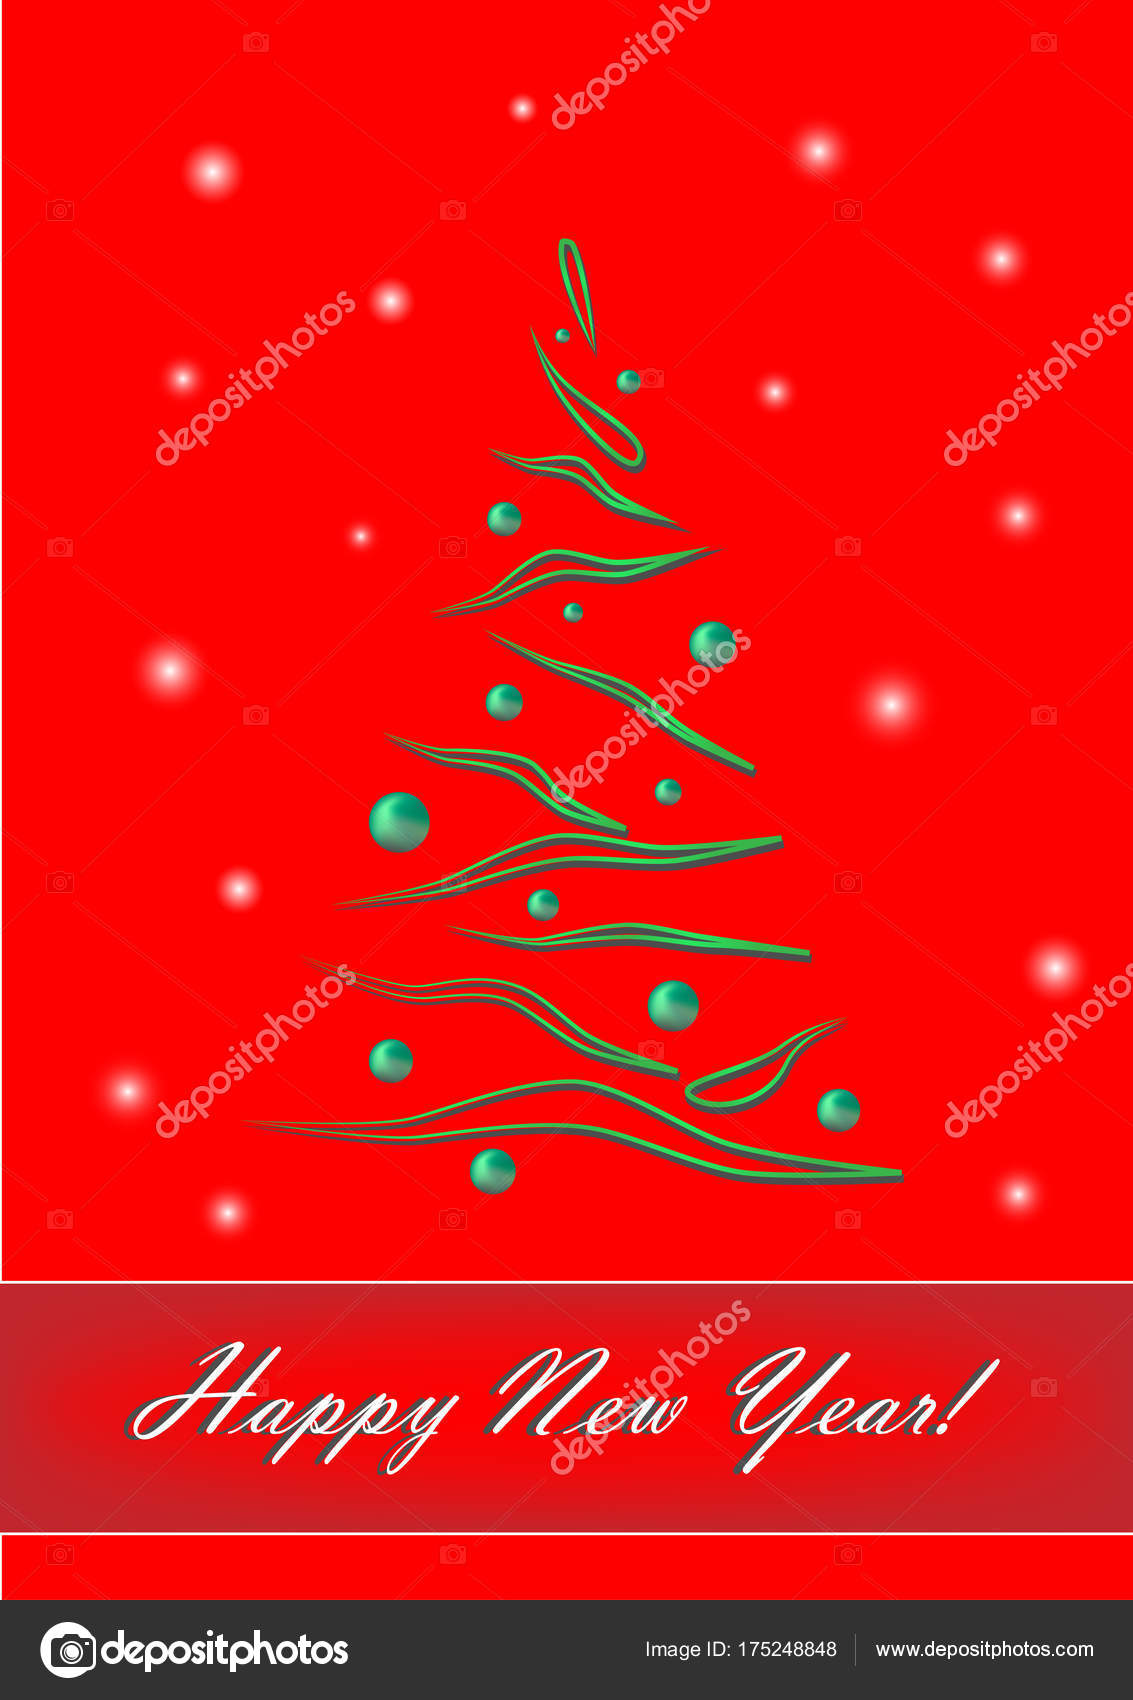 Happy New Year Green Elegant Christmas Tree Red Background Vertical Stock Vector